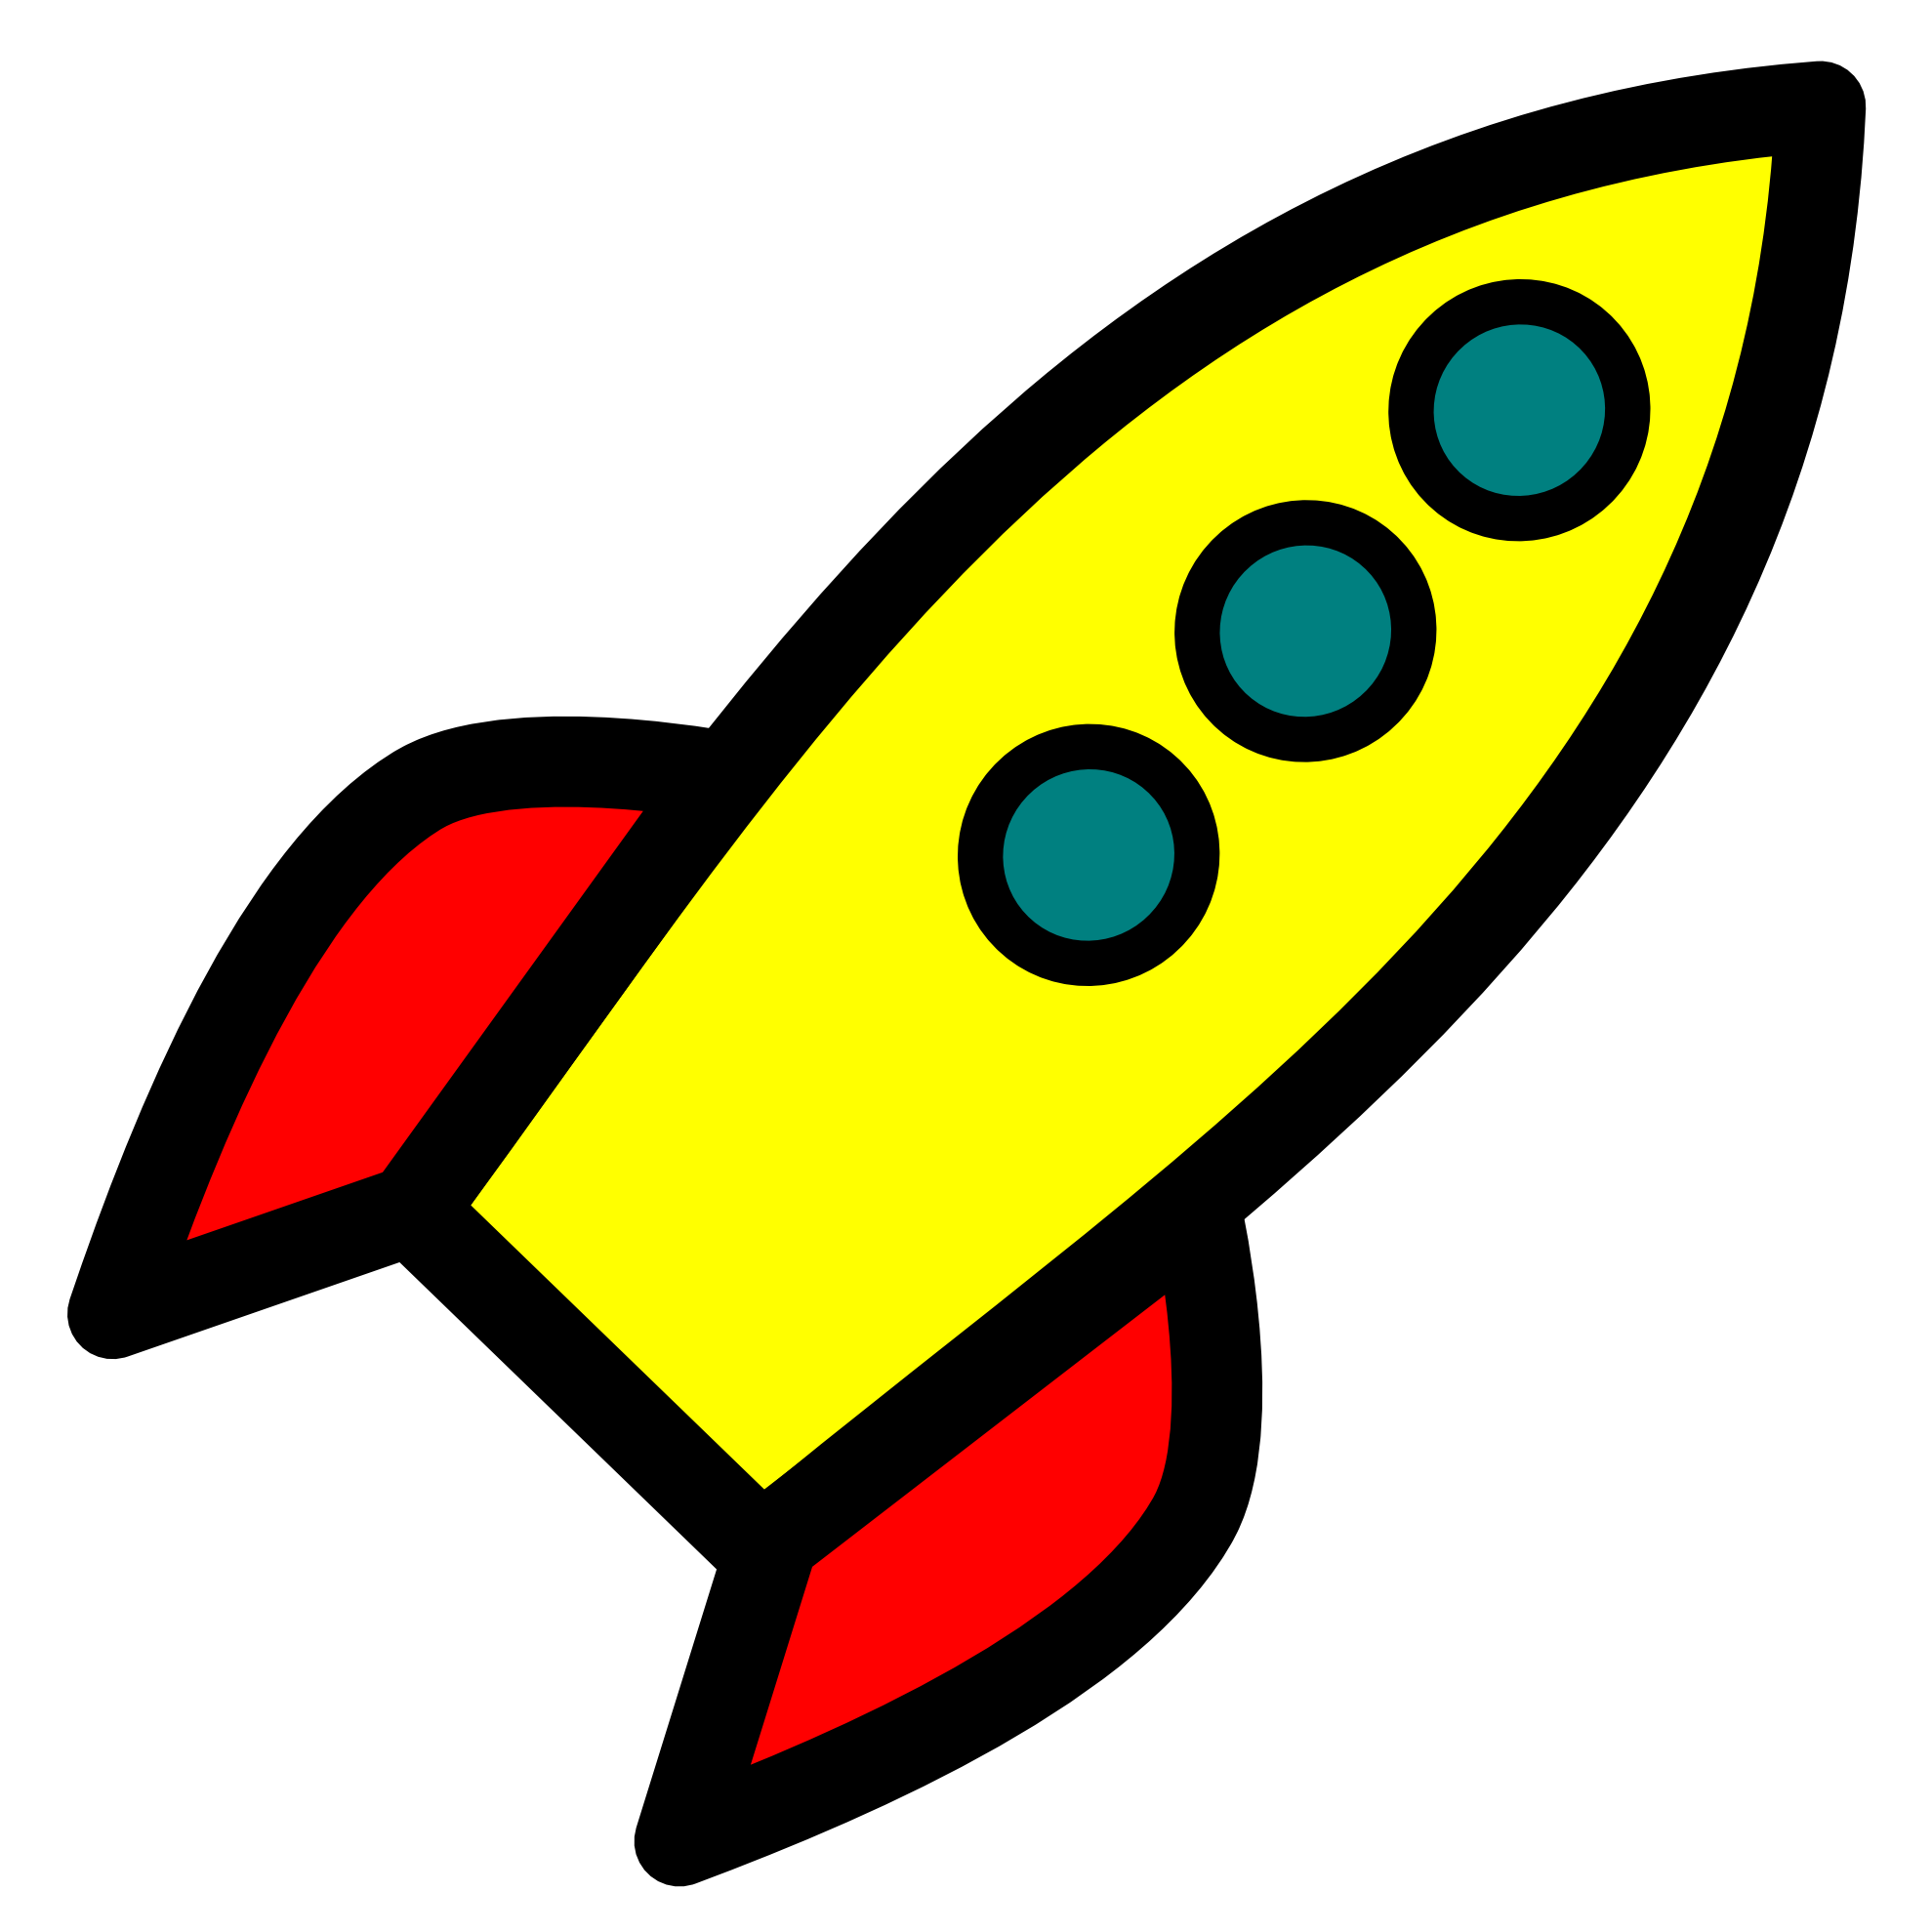 Rocket clipart spaceship. Ship pencil and in